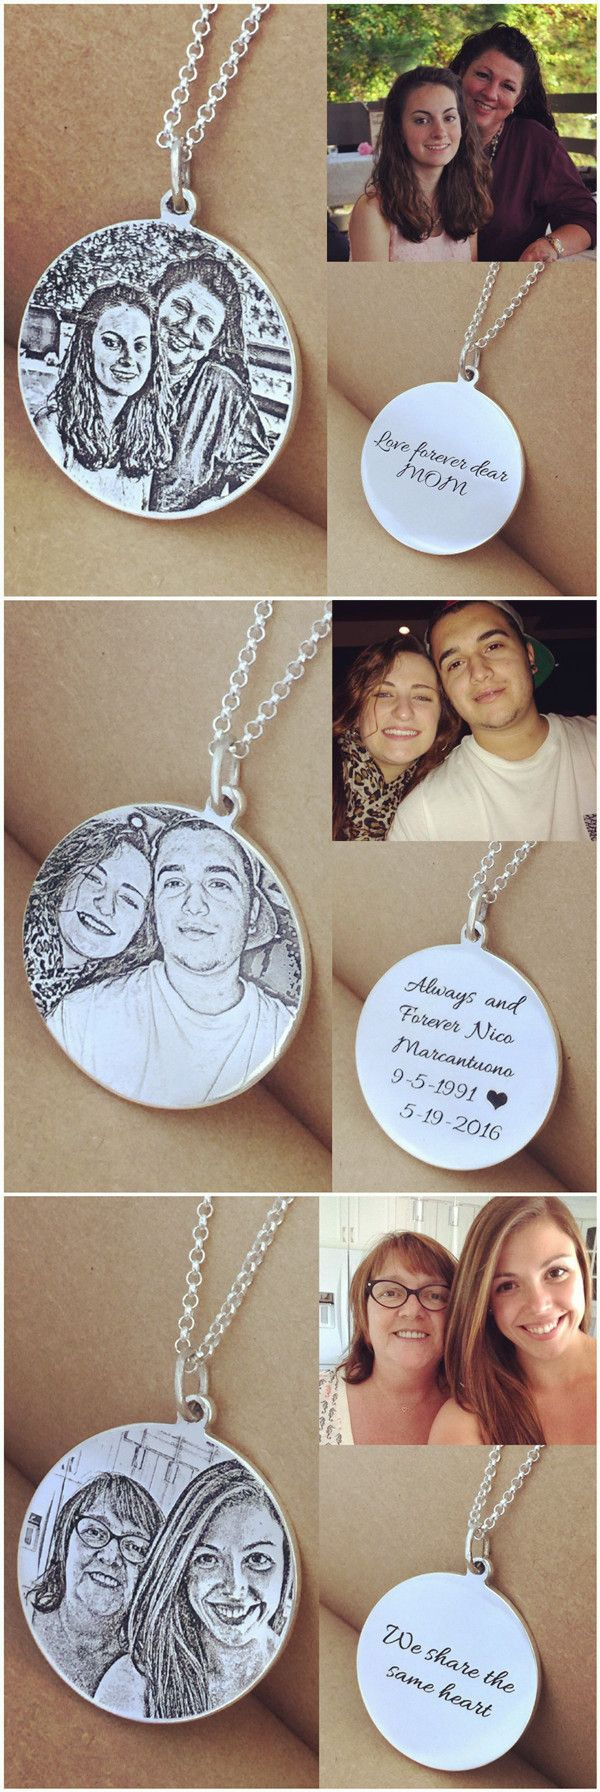 Personalized silver photo engraved necklace comes with your message, it offers memories that will last a lifetime. Nice gifts for Mothers/Best Friends/Couples.